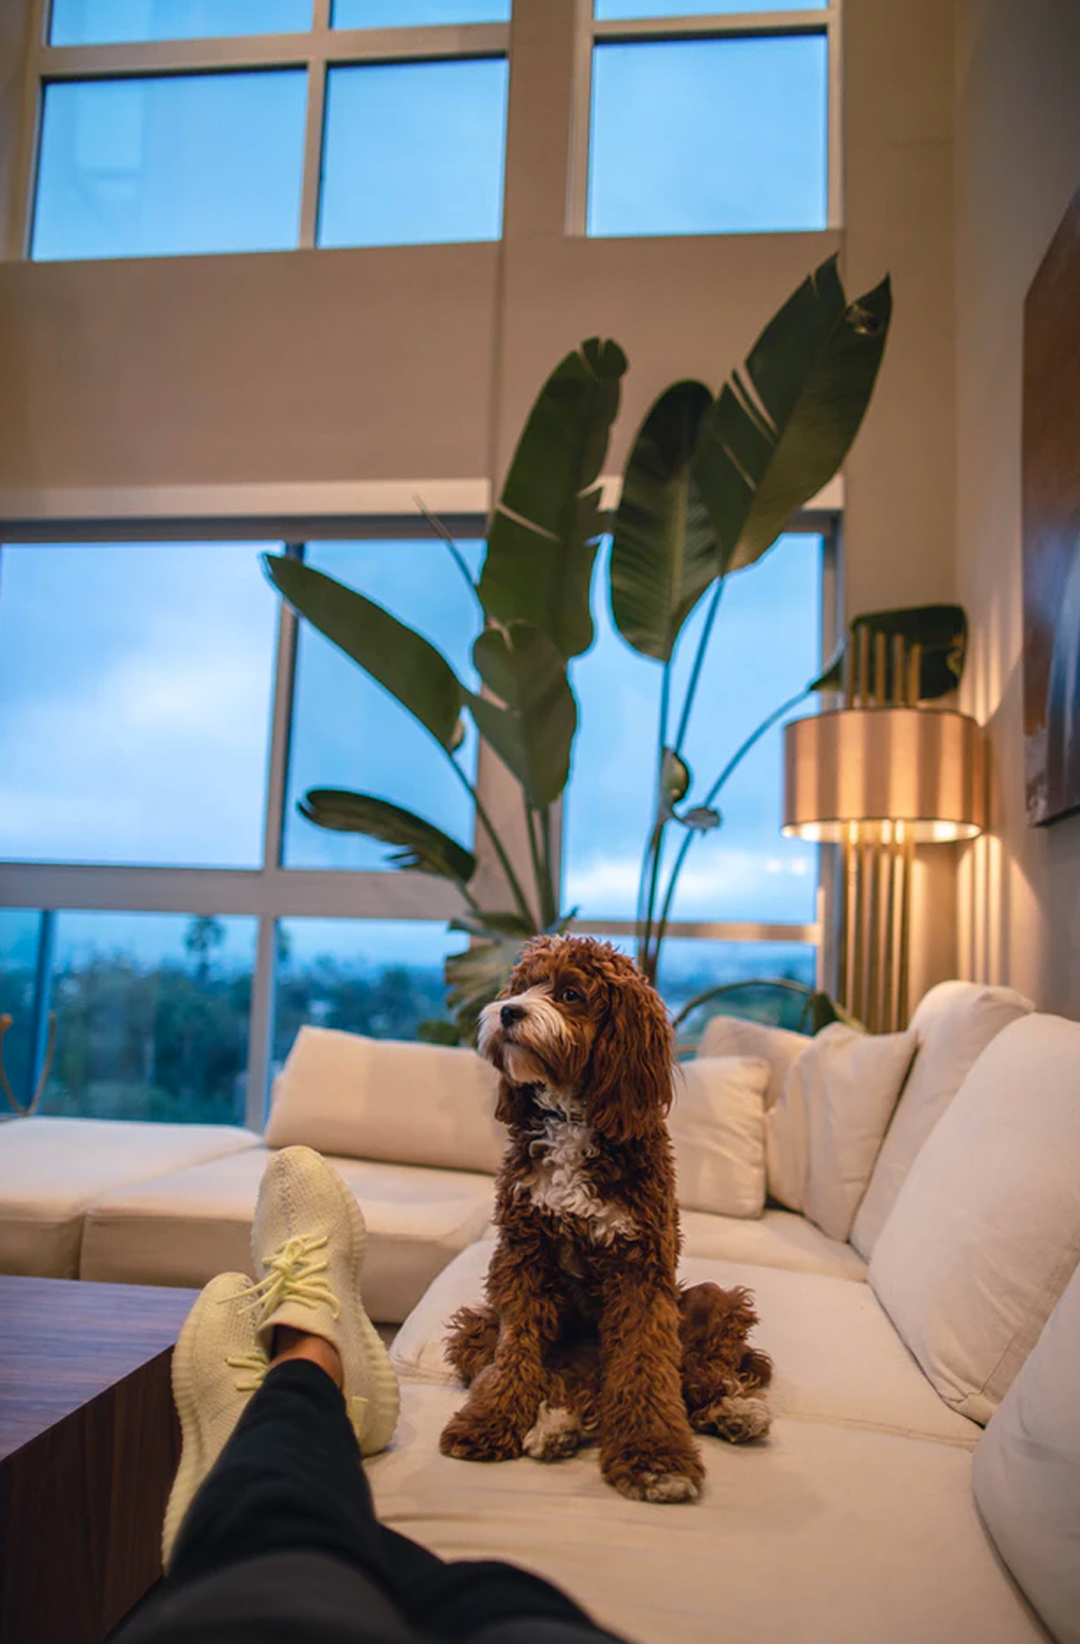 dog sitting on couch in hotel room